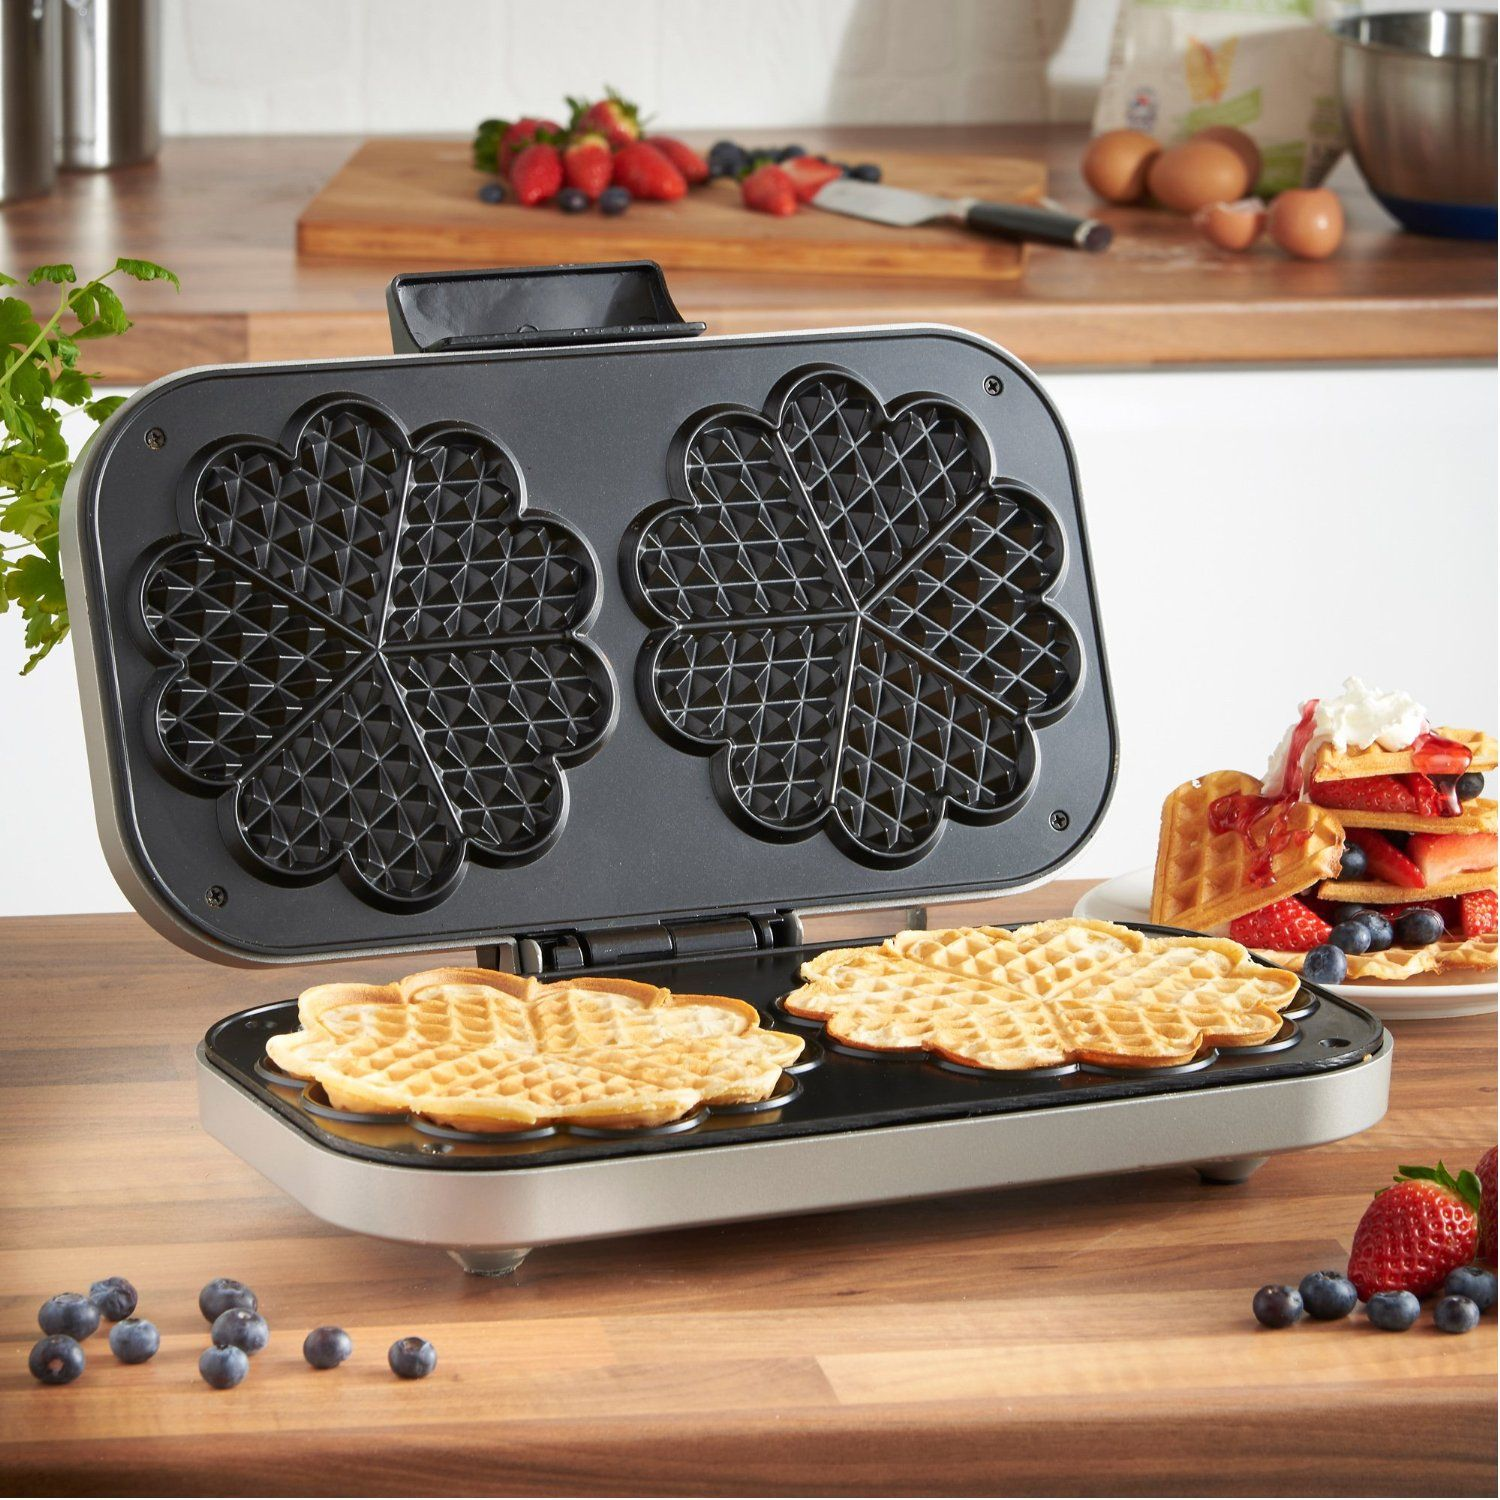 VonShef Double Waffle Maker 1300W, NonStick with